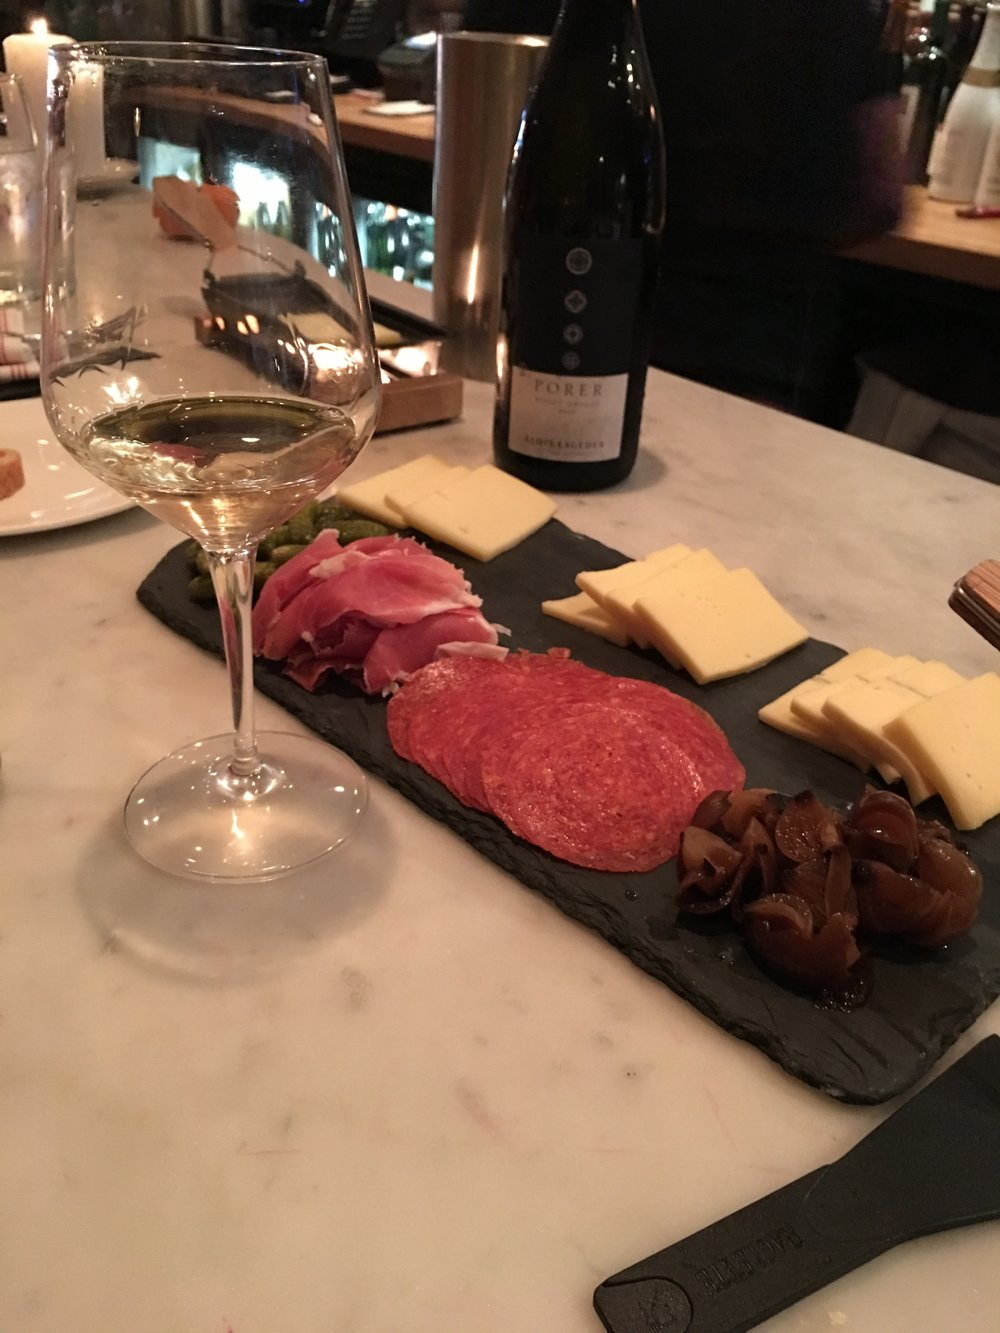 This was at Murray\u0027s Cheese in NYC. It\u0027s all the fixings for a raclette. & Cheese Plate Hall Of Fame \u2014 Jill and Kate